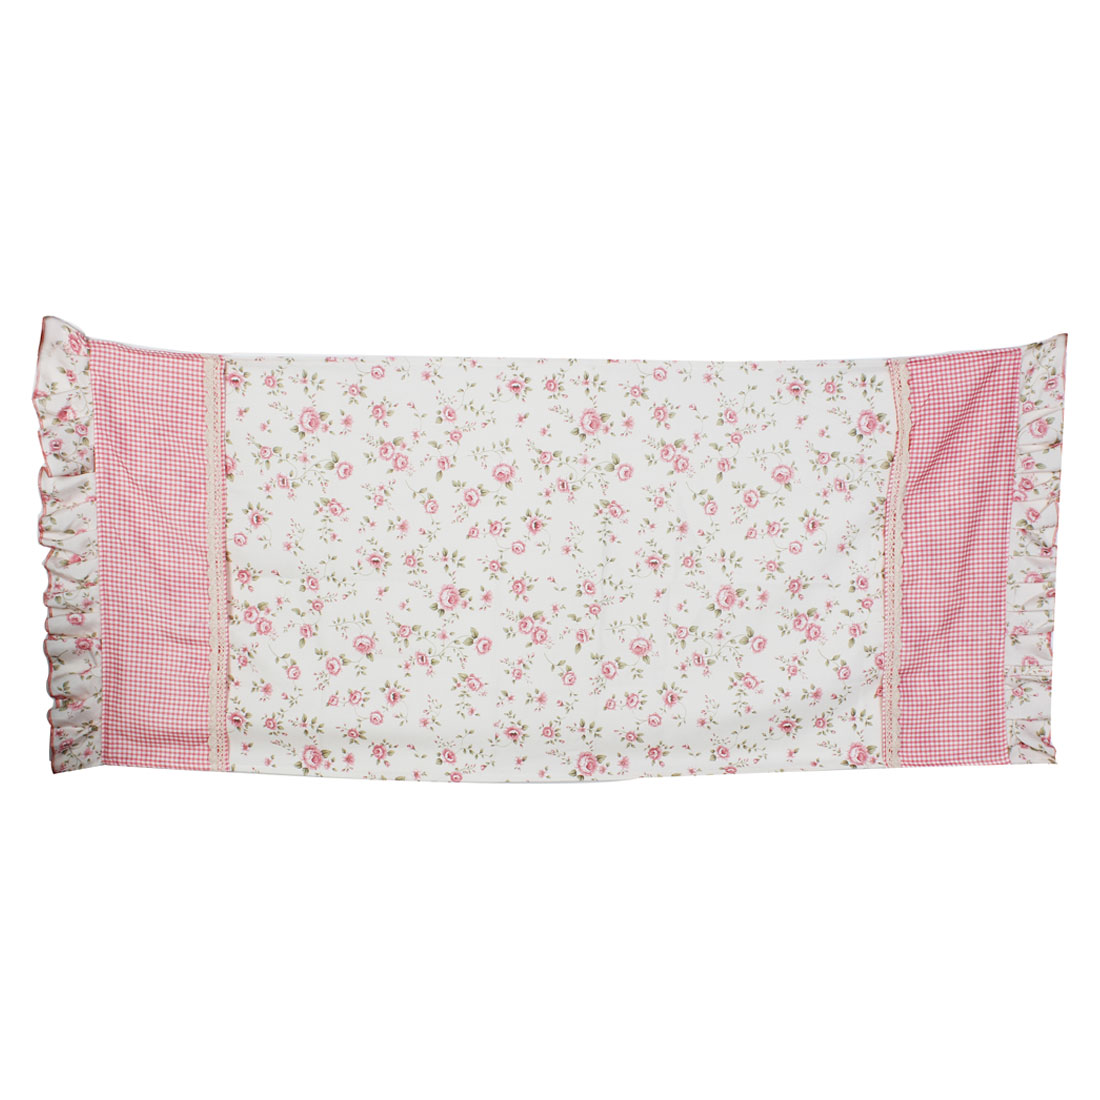 Flowers Printed Refrigerator Dust Proof Cover Storage Bag 60 x 140cm